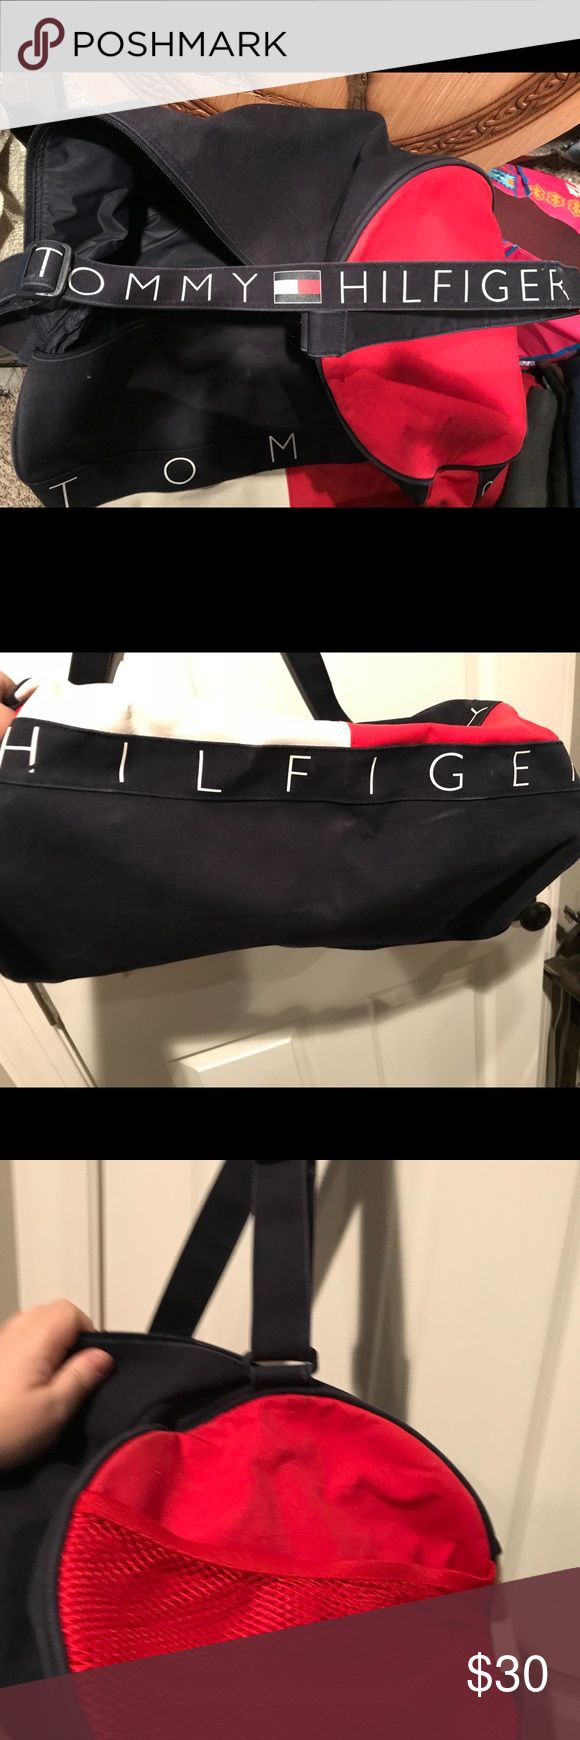 Tommy Hilfiger Boston bag Going on an overnighter? This Boston will make it nicer🦄 please buy this Boston she said🎼🎤The Tommy Boston mini Duffle has been a mover & shaker and a clothing taker. It's time to go a duffling. Tommy Hilfiger Bags Travel Bags